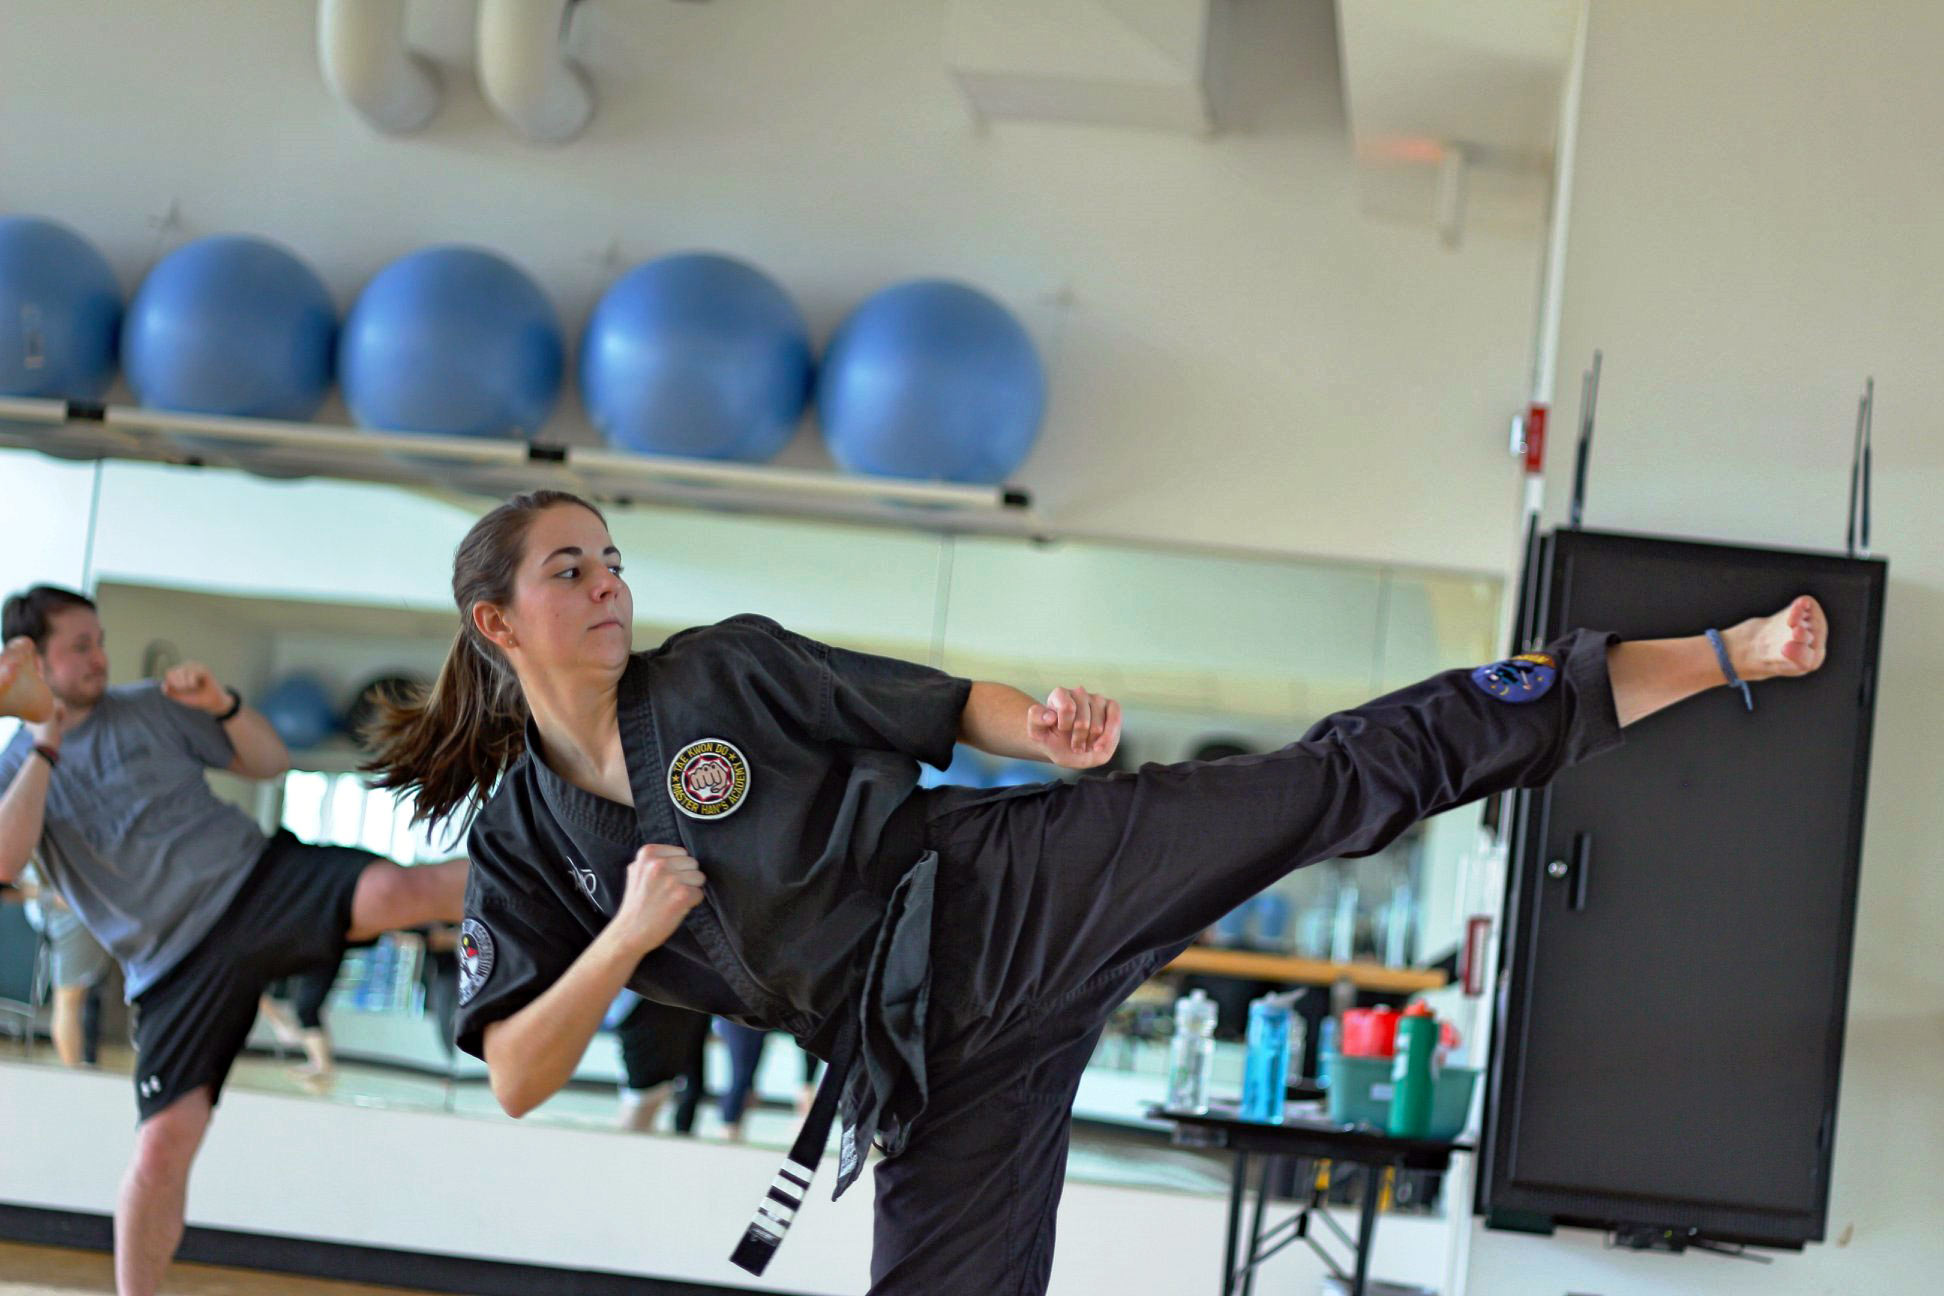 Martial Arts Class at Student Recreation Center